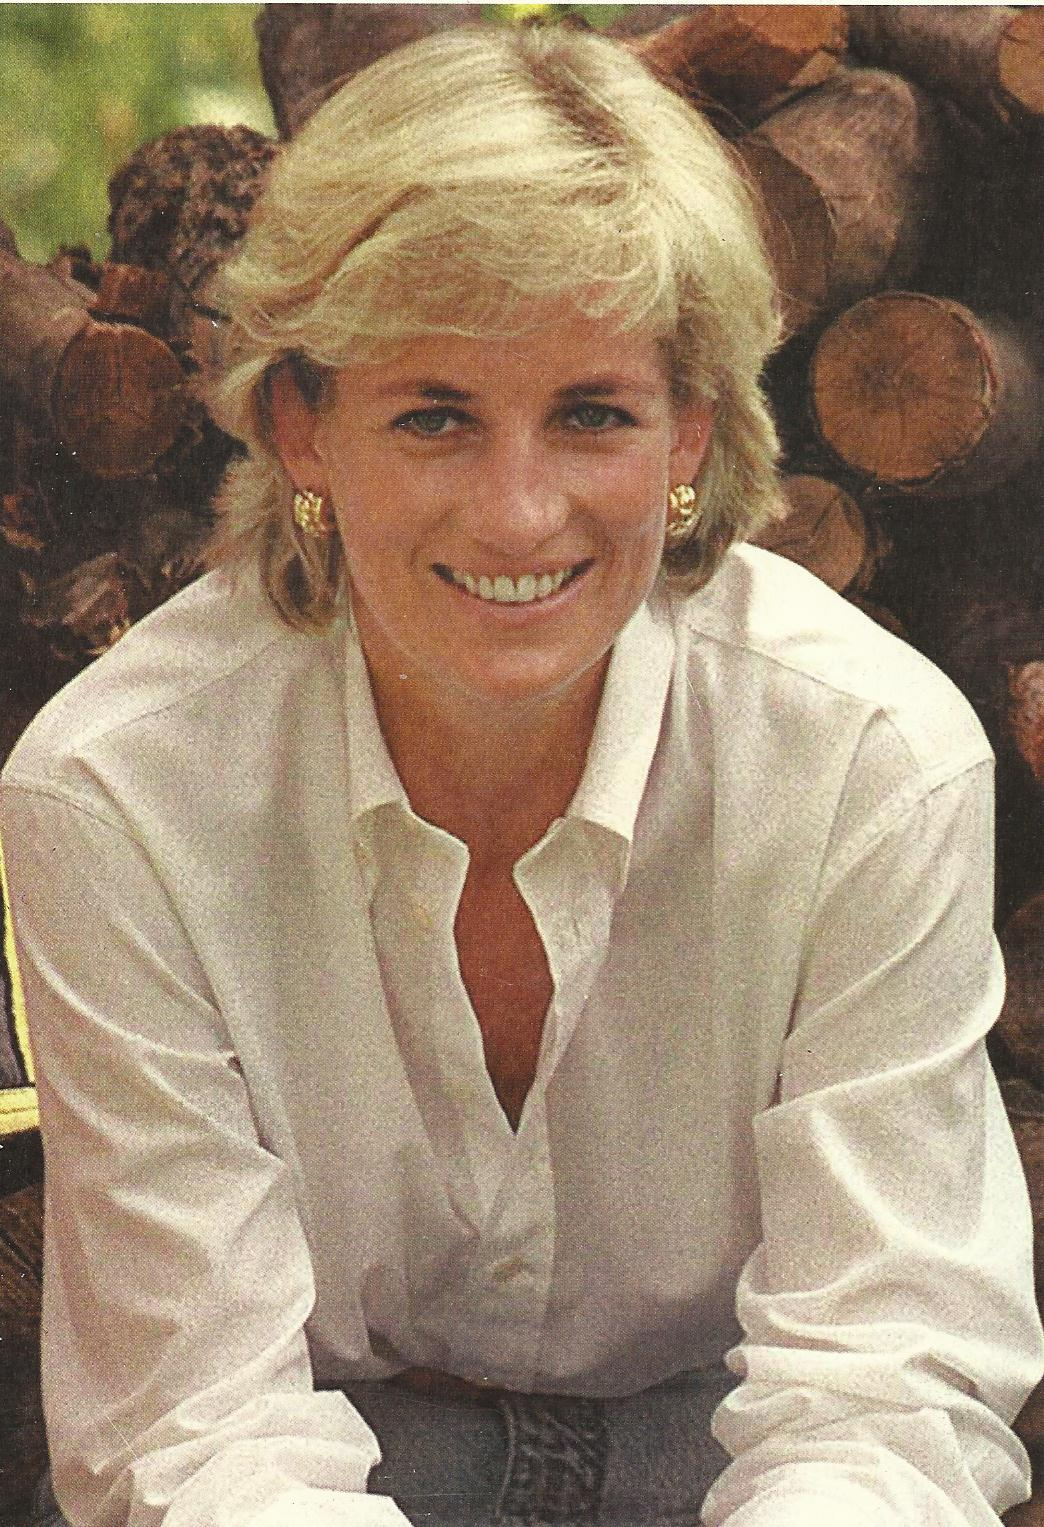 Princess Diana images princess of wales HD wallpaper and background ...: http://www.fanpop.com/clubs/princess-diana/images/31528312/title/princess-wales-photo